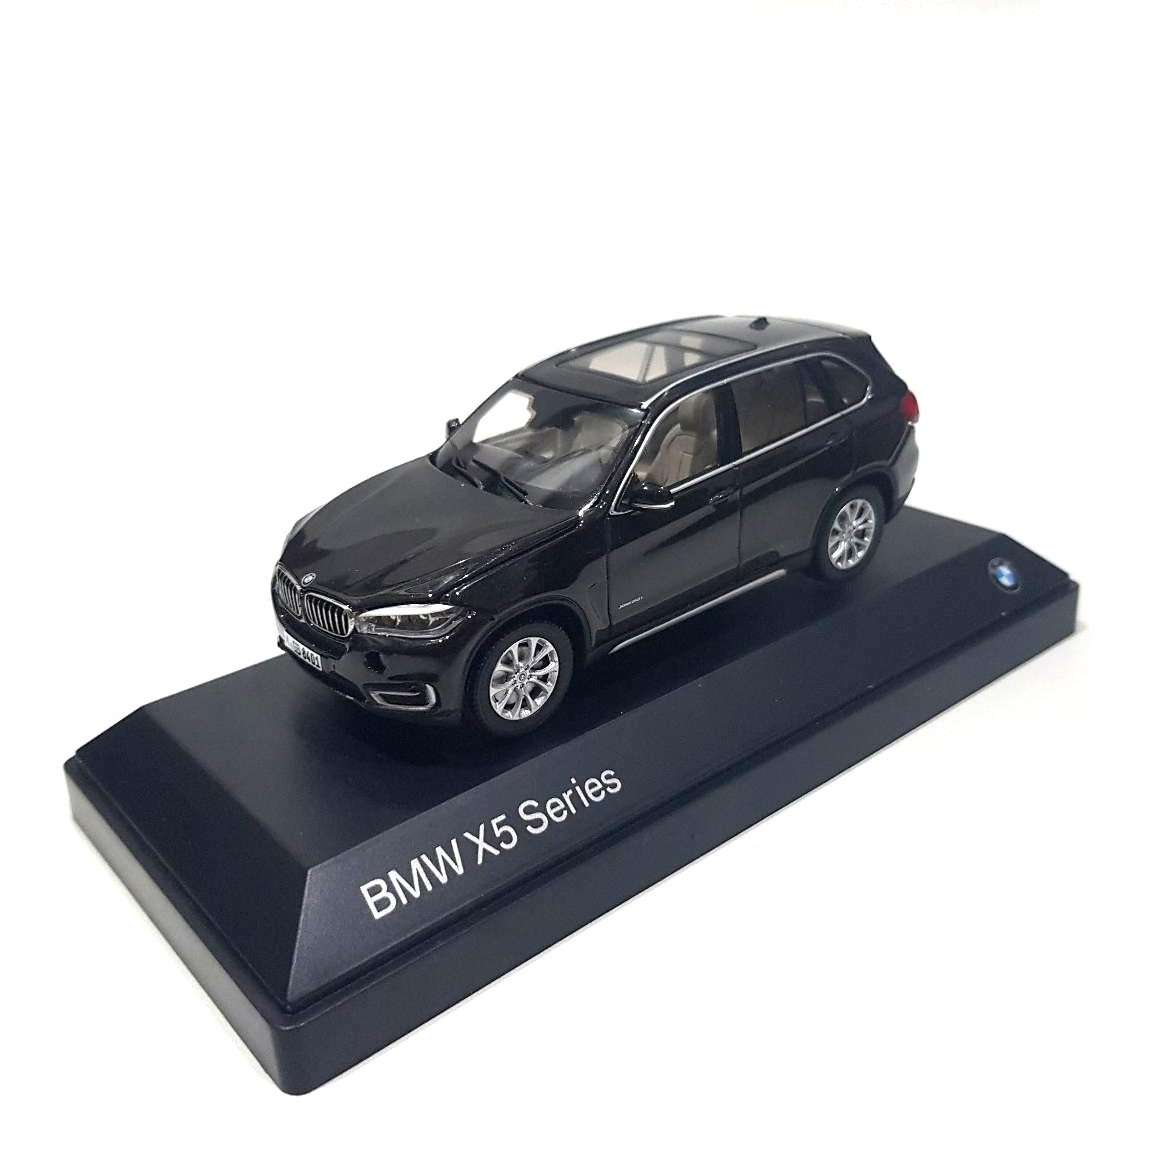 Diecast Car 1/43: Street Cars - BMW X5 Series F15 Photo